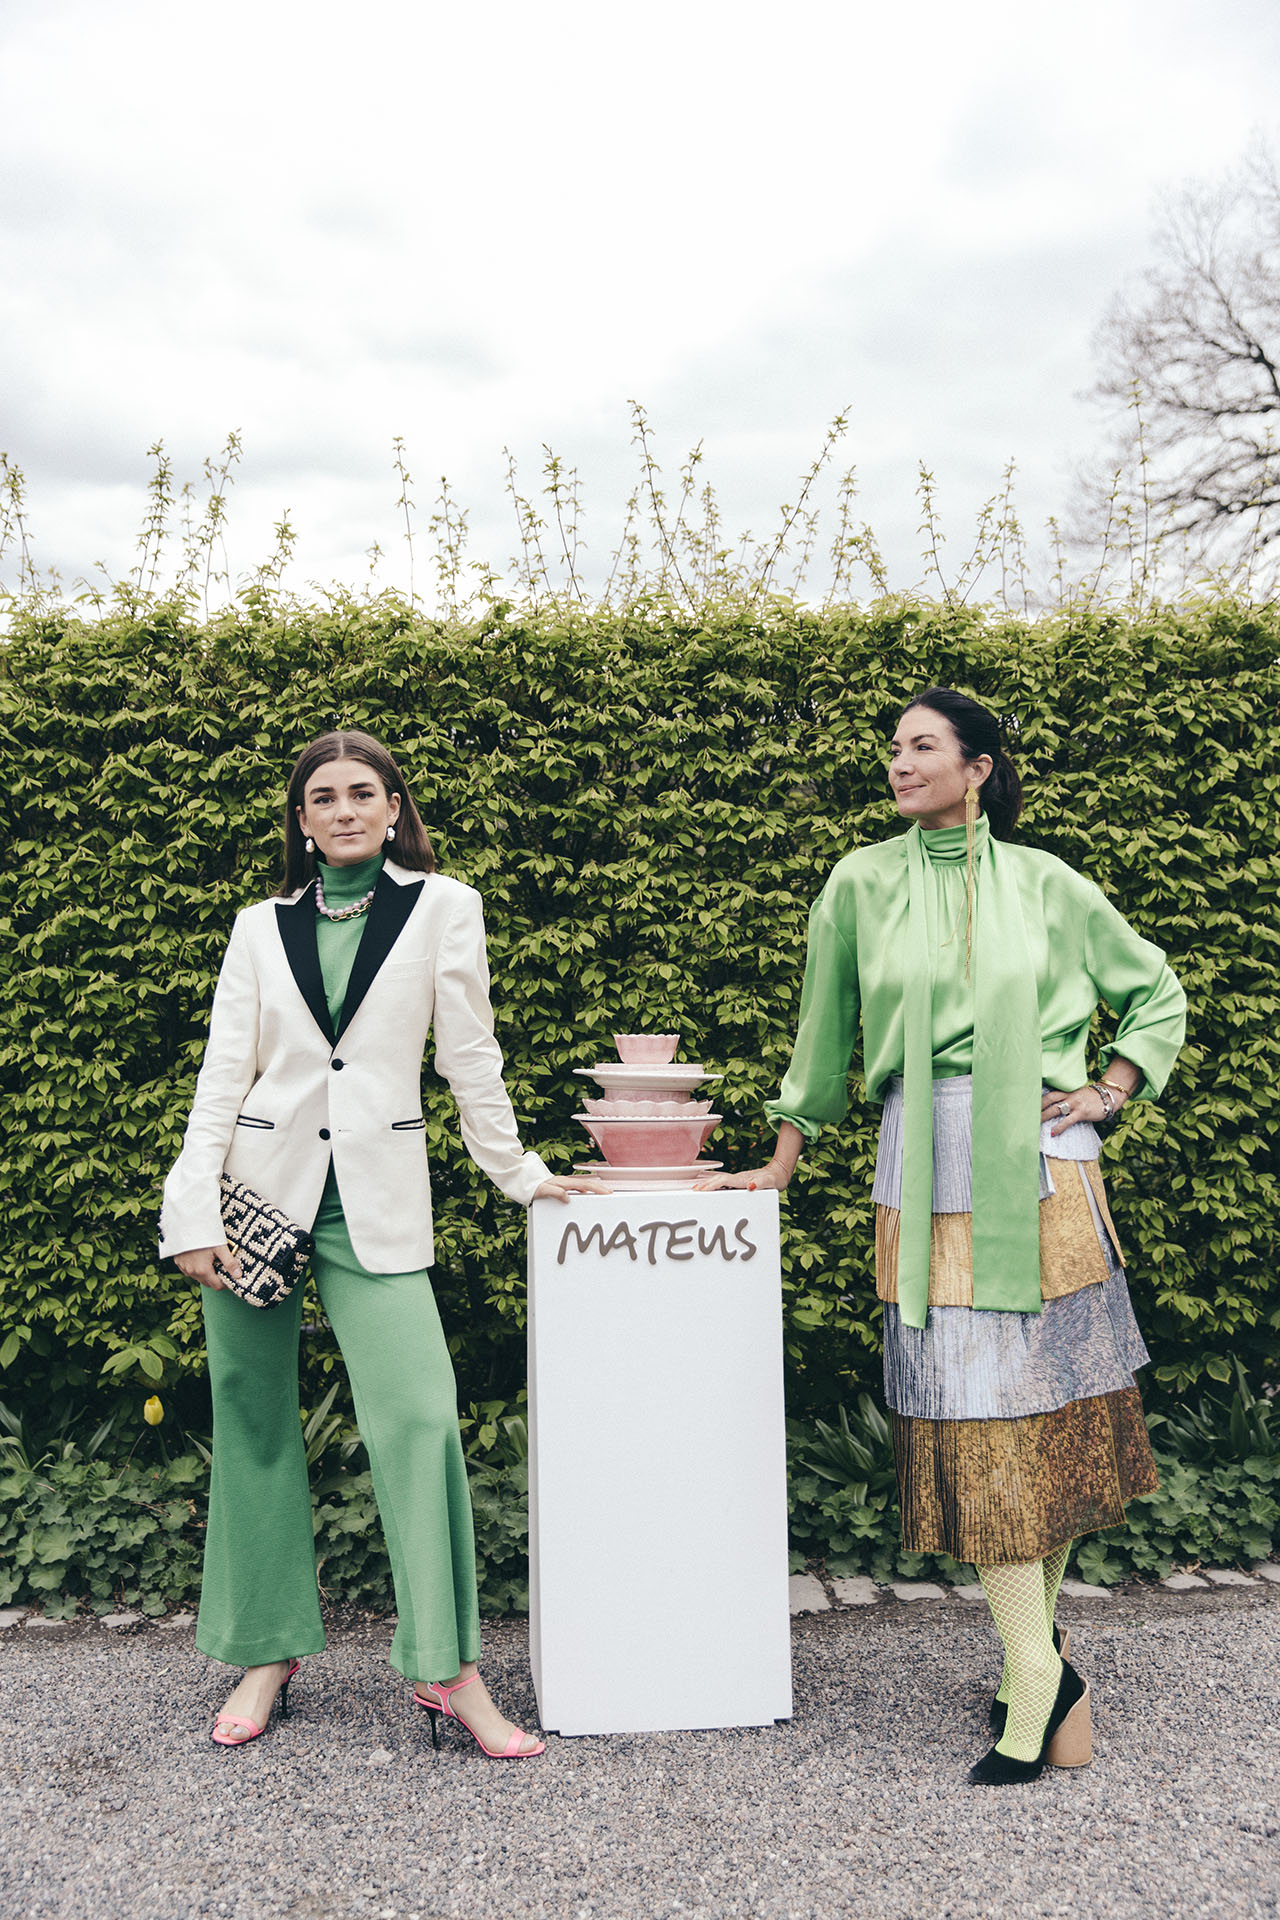 Mother and daughter Annica and Linn Eklund at Mateus Meets Fashion 2019, Stockholm, Sweden. Photo by Rasmus Lindahl © Mateus.